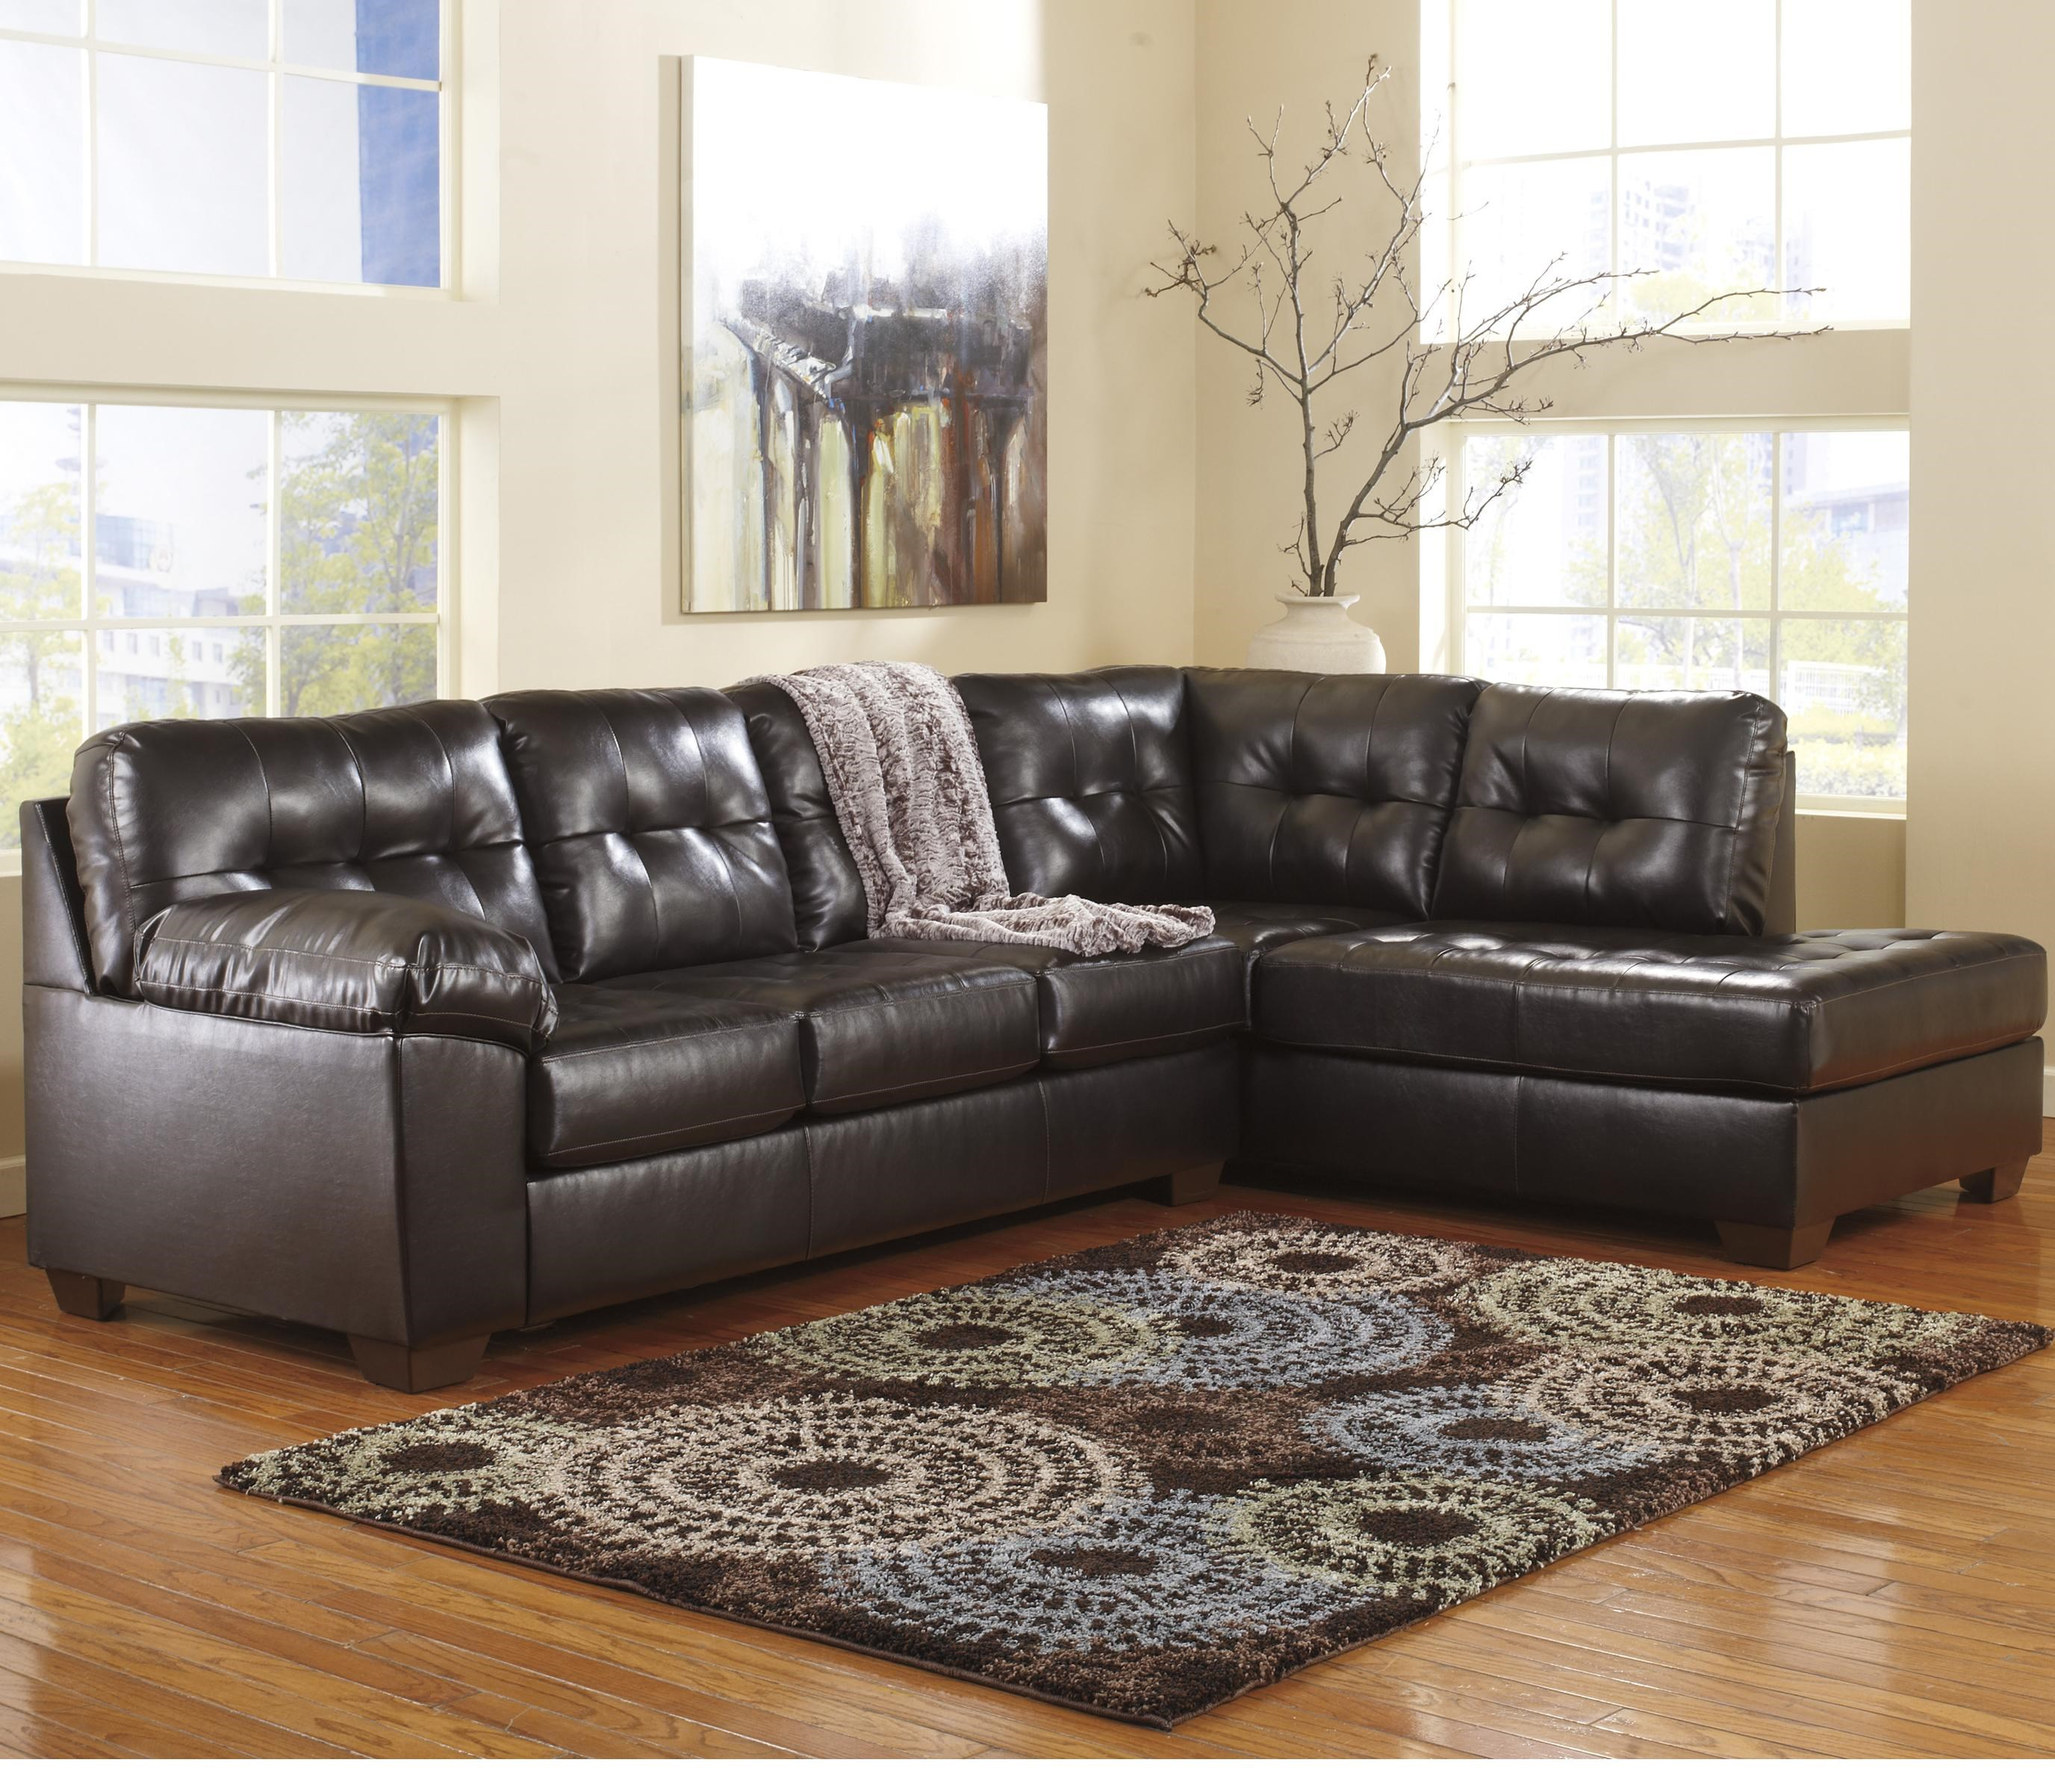 Signature Design by Ashley Alliston DuraBlend® - Chocolate Sectional w/ Right Chaise u0026 Tufting  sc 1 st  Rotmans : rotmans sectionals - Sectionals, Sofas & Couches